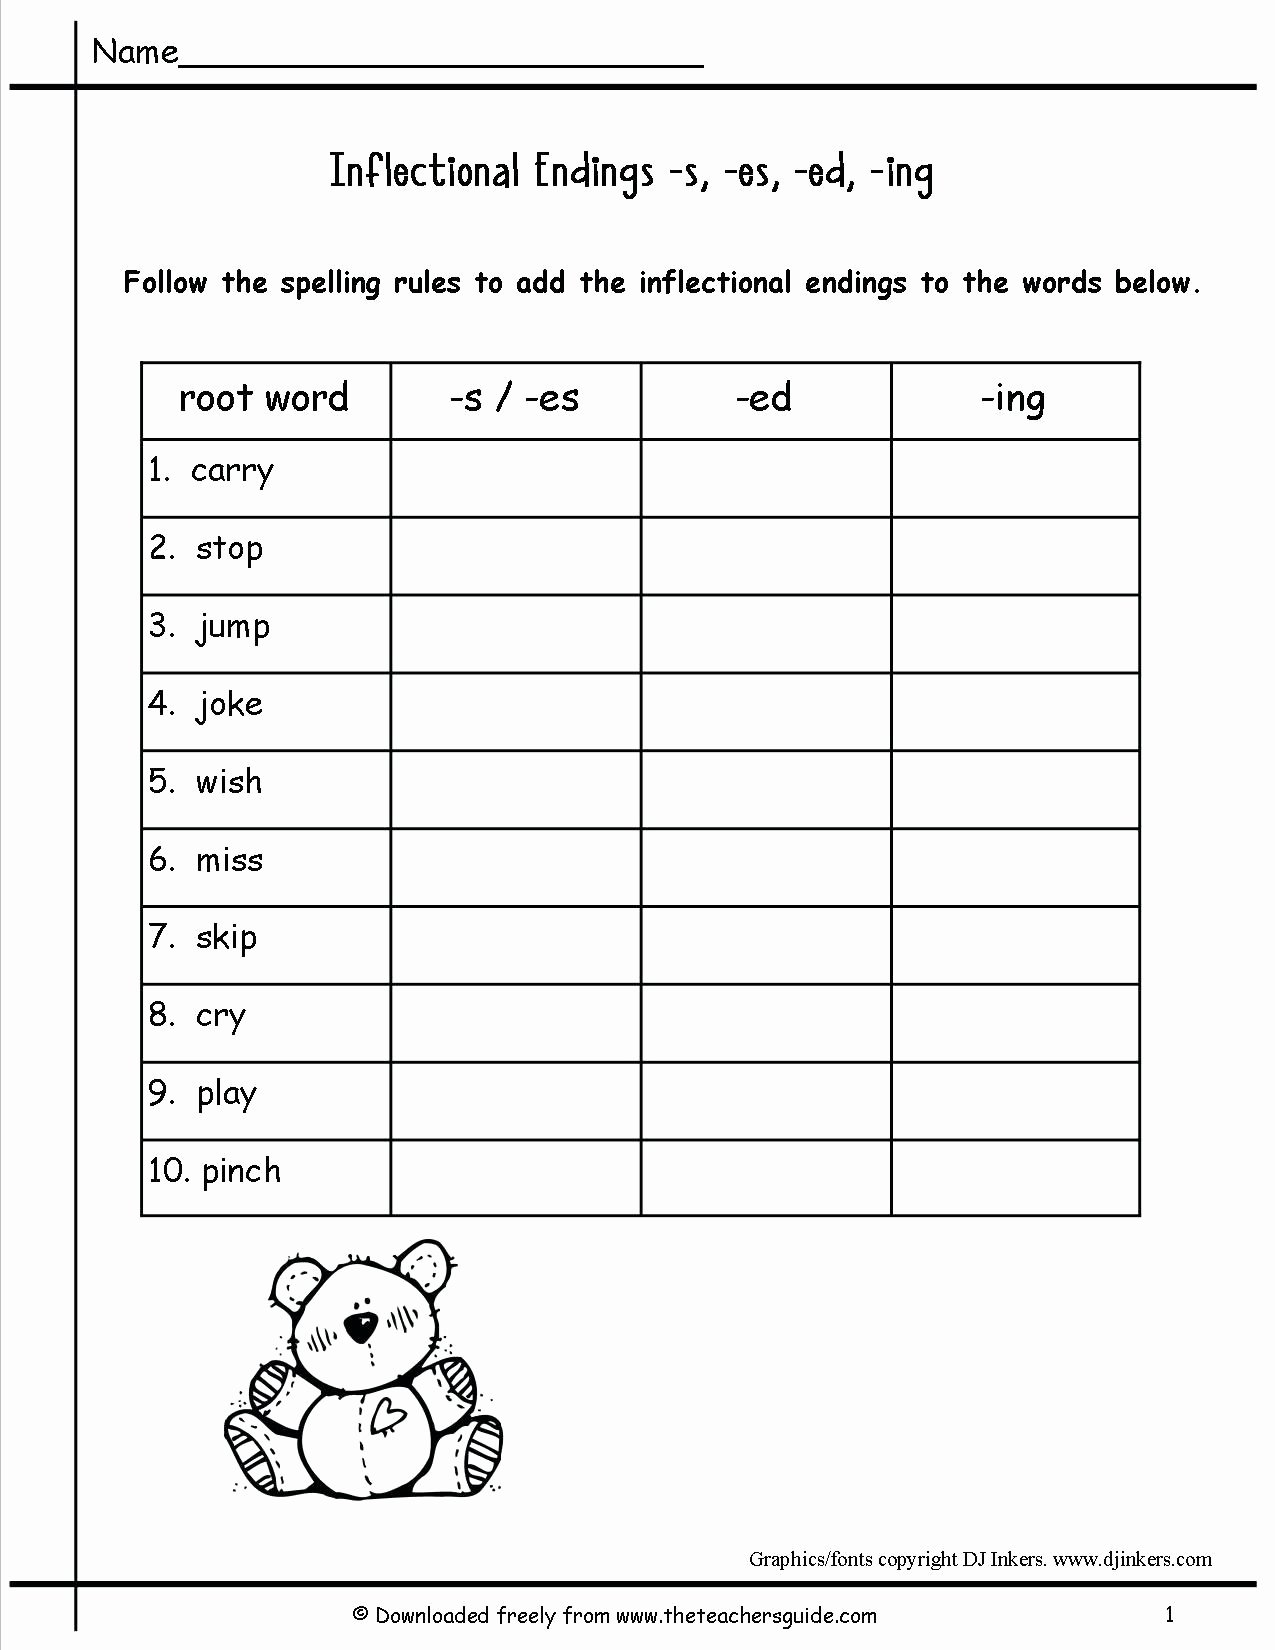 Inflected Endings Worksheets 2nd Grade Free Ed Ing Ending Worksheets